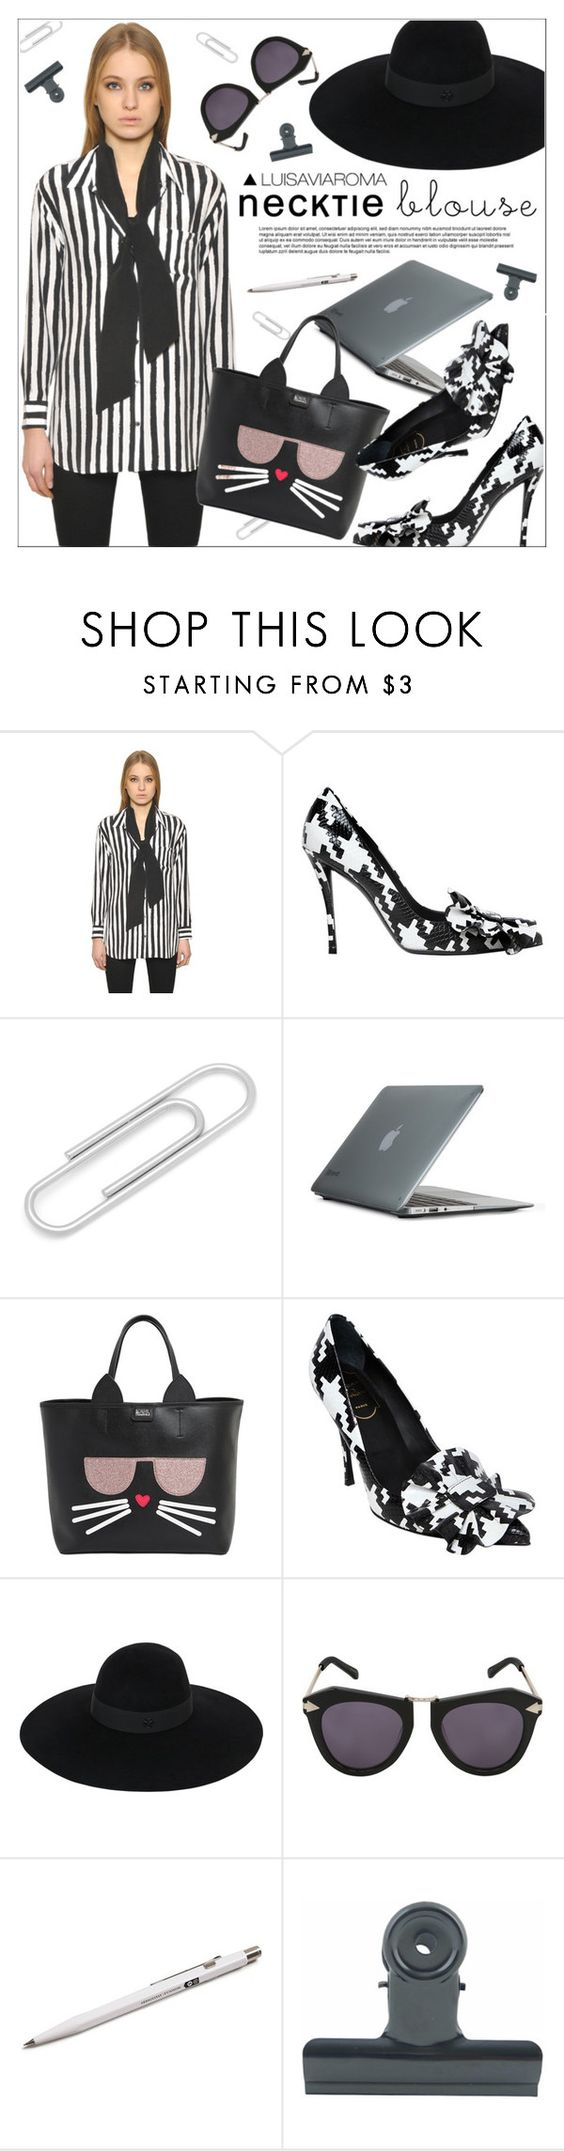 """""""The Necktie Blouse"""" by luisaviaroma ❤ liked on Polyvore featuring Equipment, Roger Vivier, Ox & Bull Trading Co., Speck, Karl Lagerfeld, Maison Michel, Karen Walker, Monocle and Holly's House"""